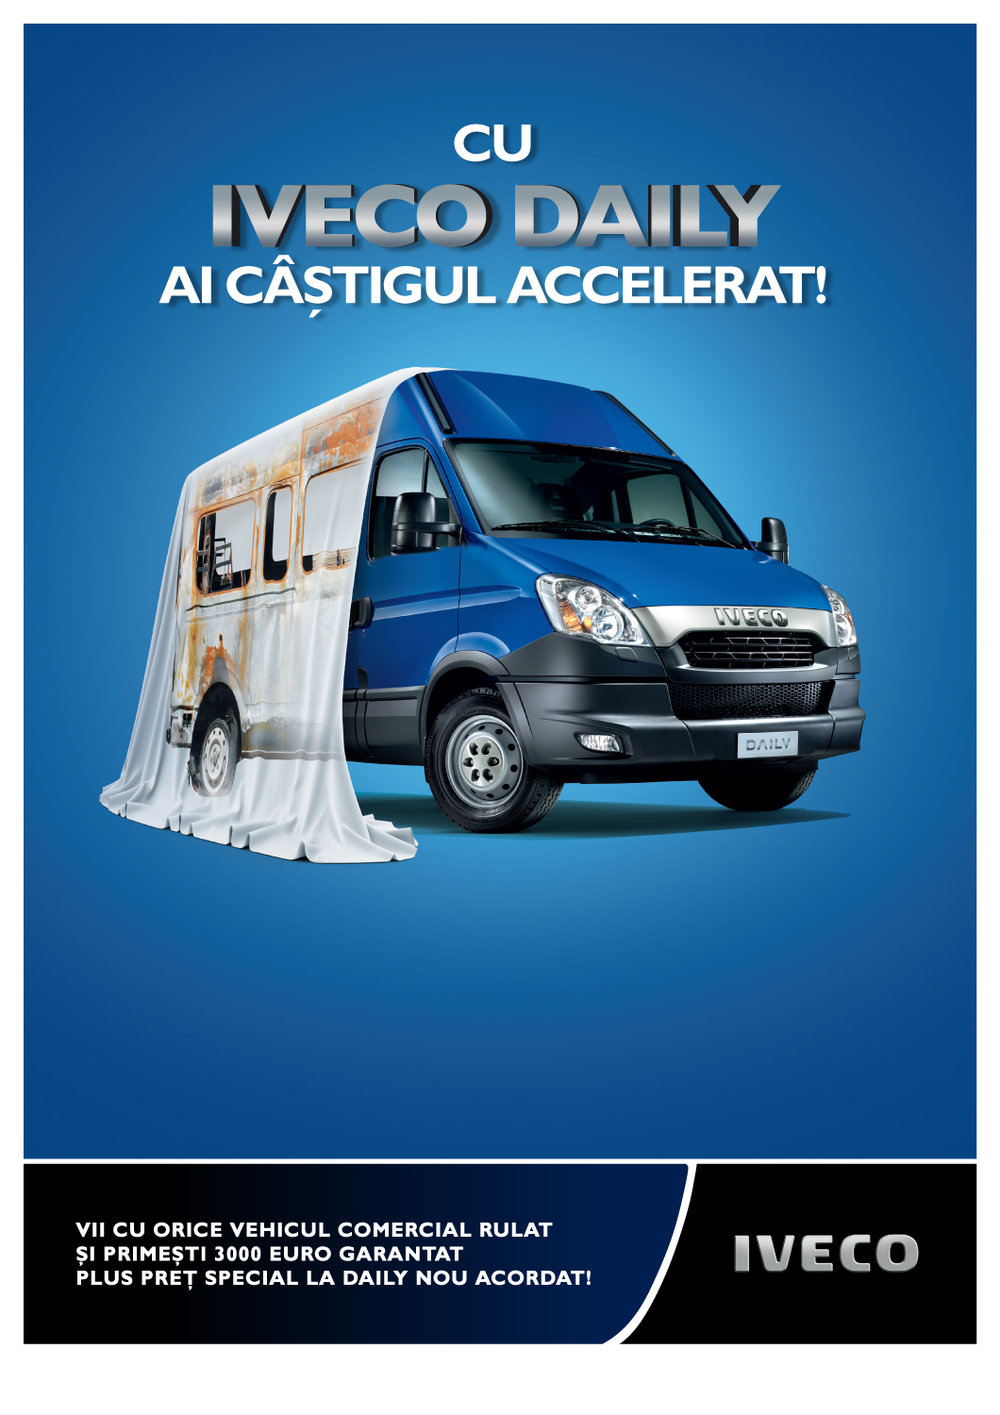 IVECO_cover.jpg